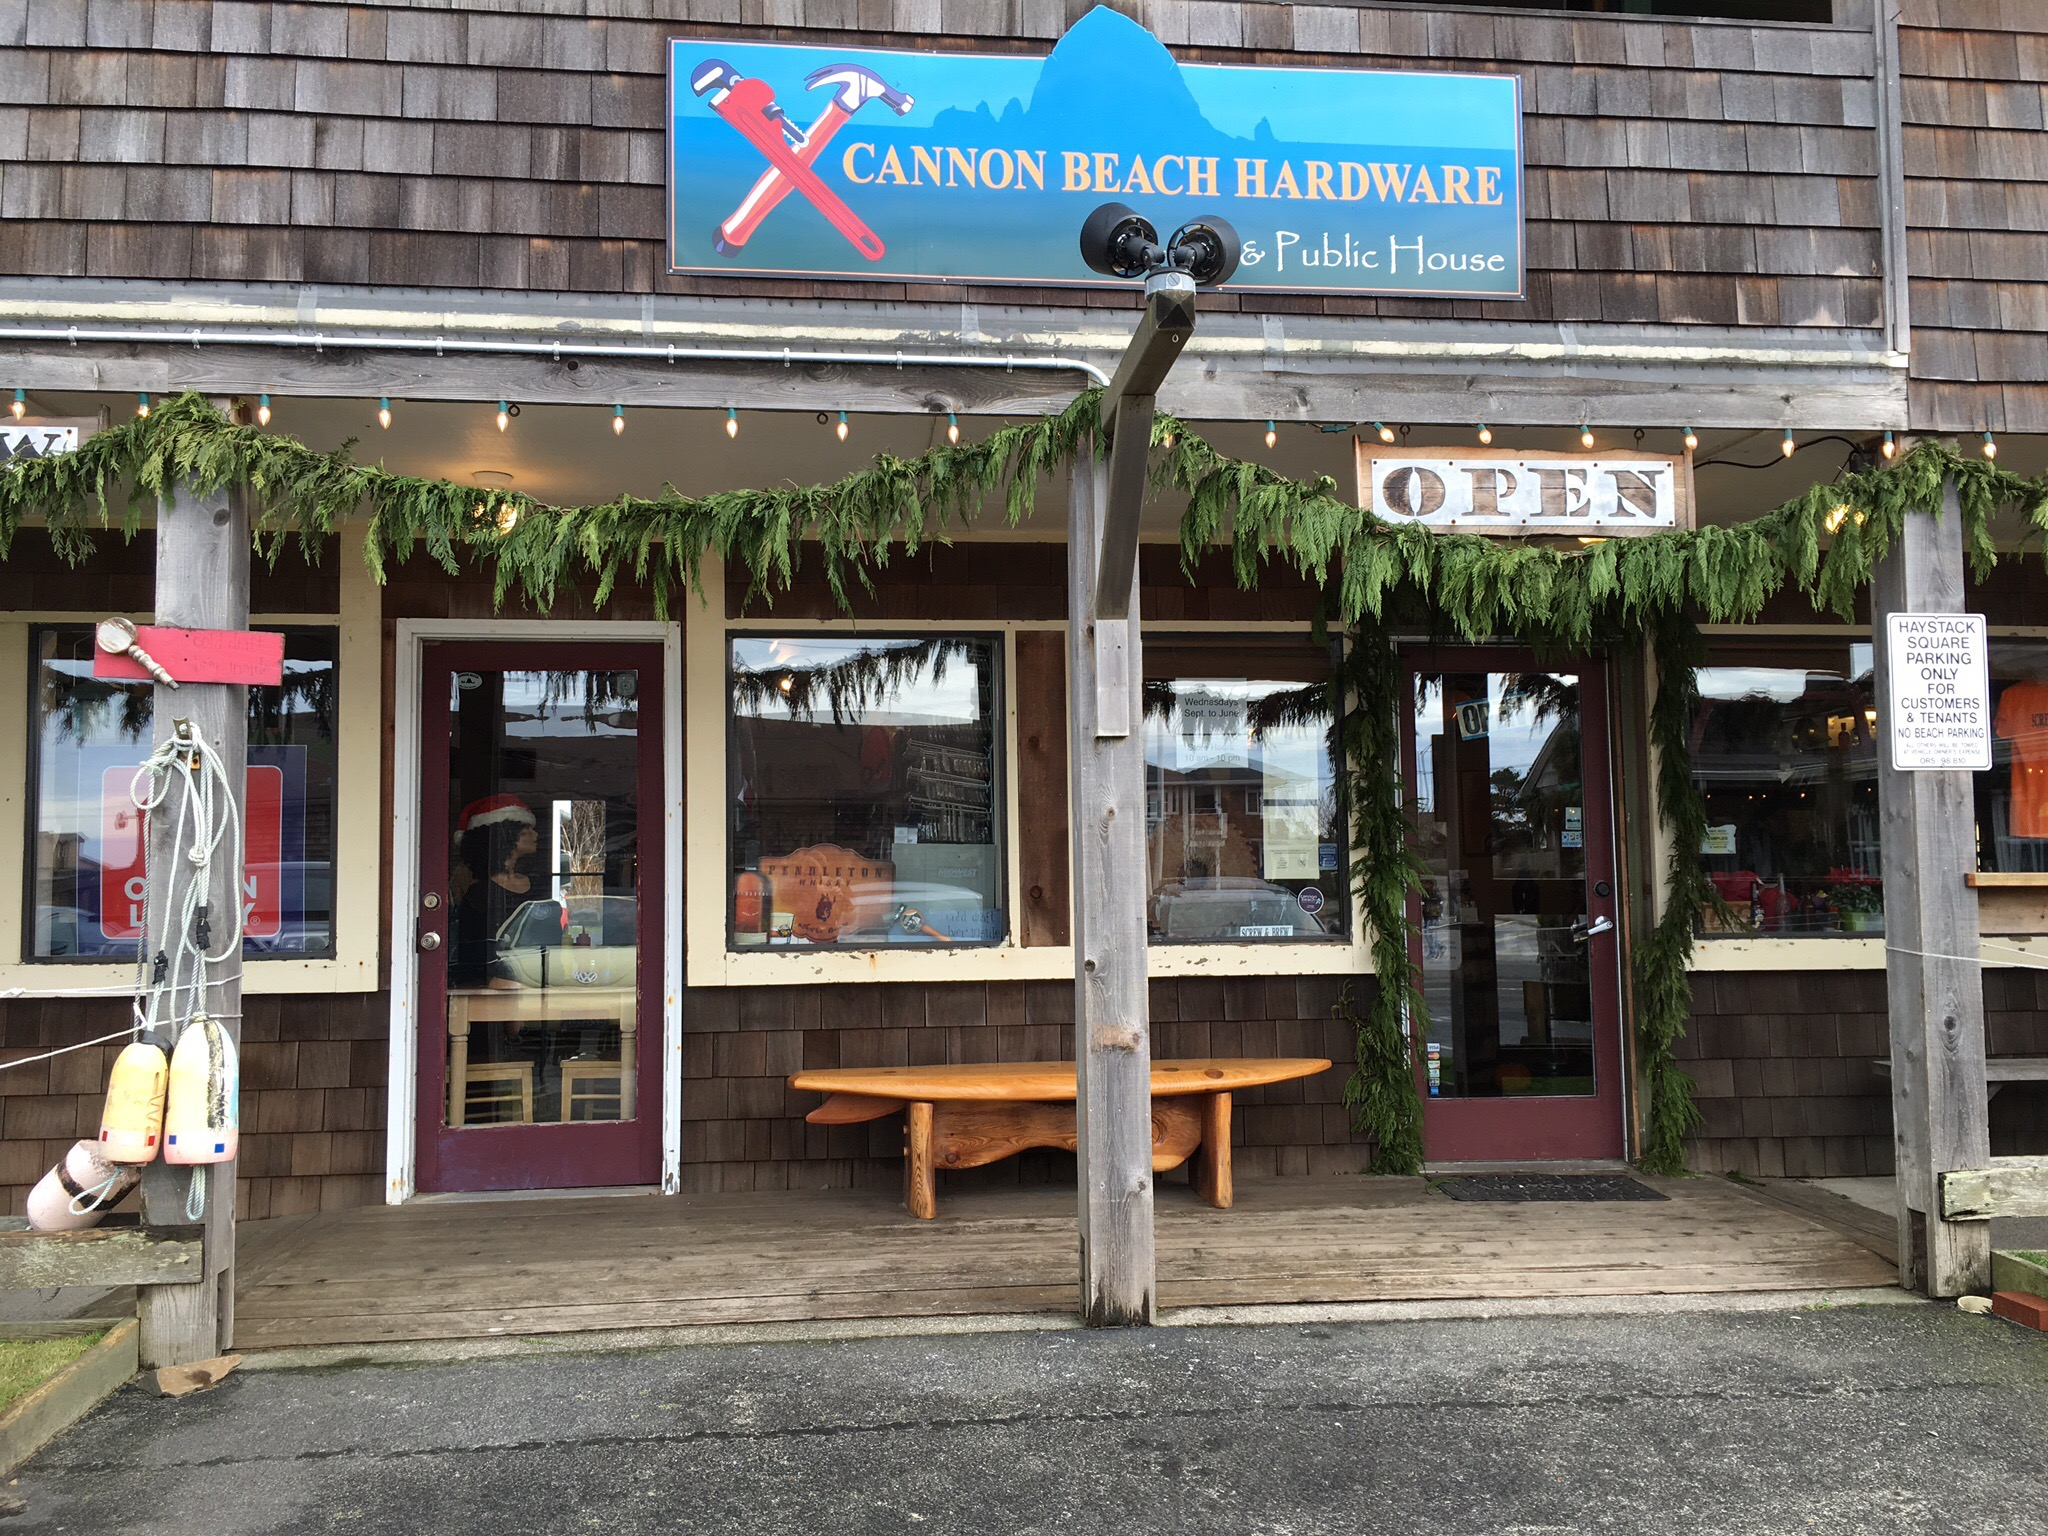 Cannon Beach Hardware & Public House (photo by Cat Stelzer)